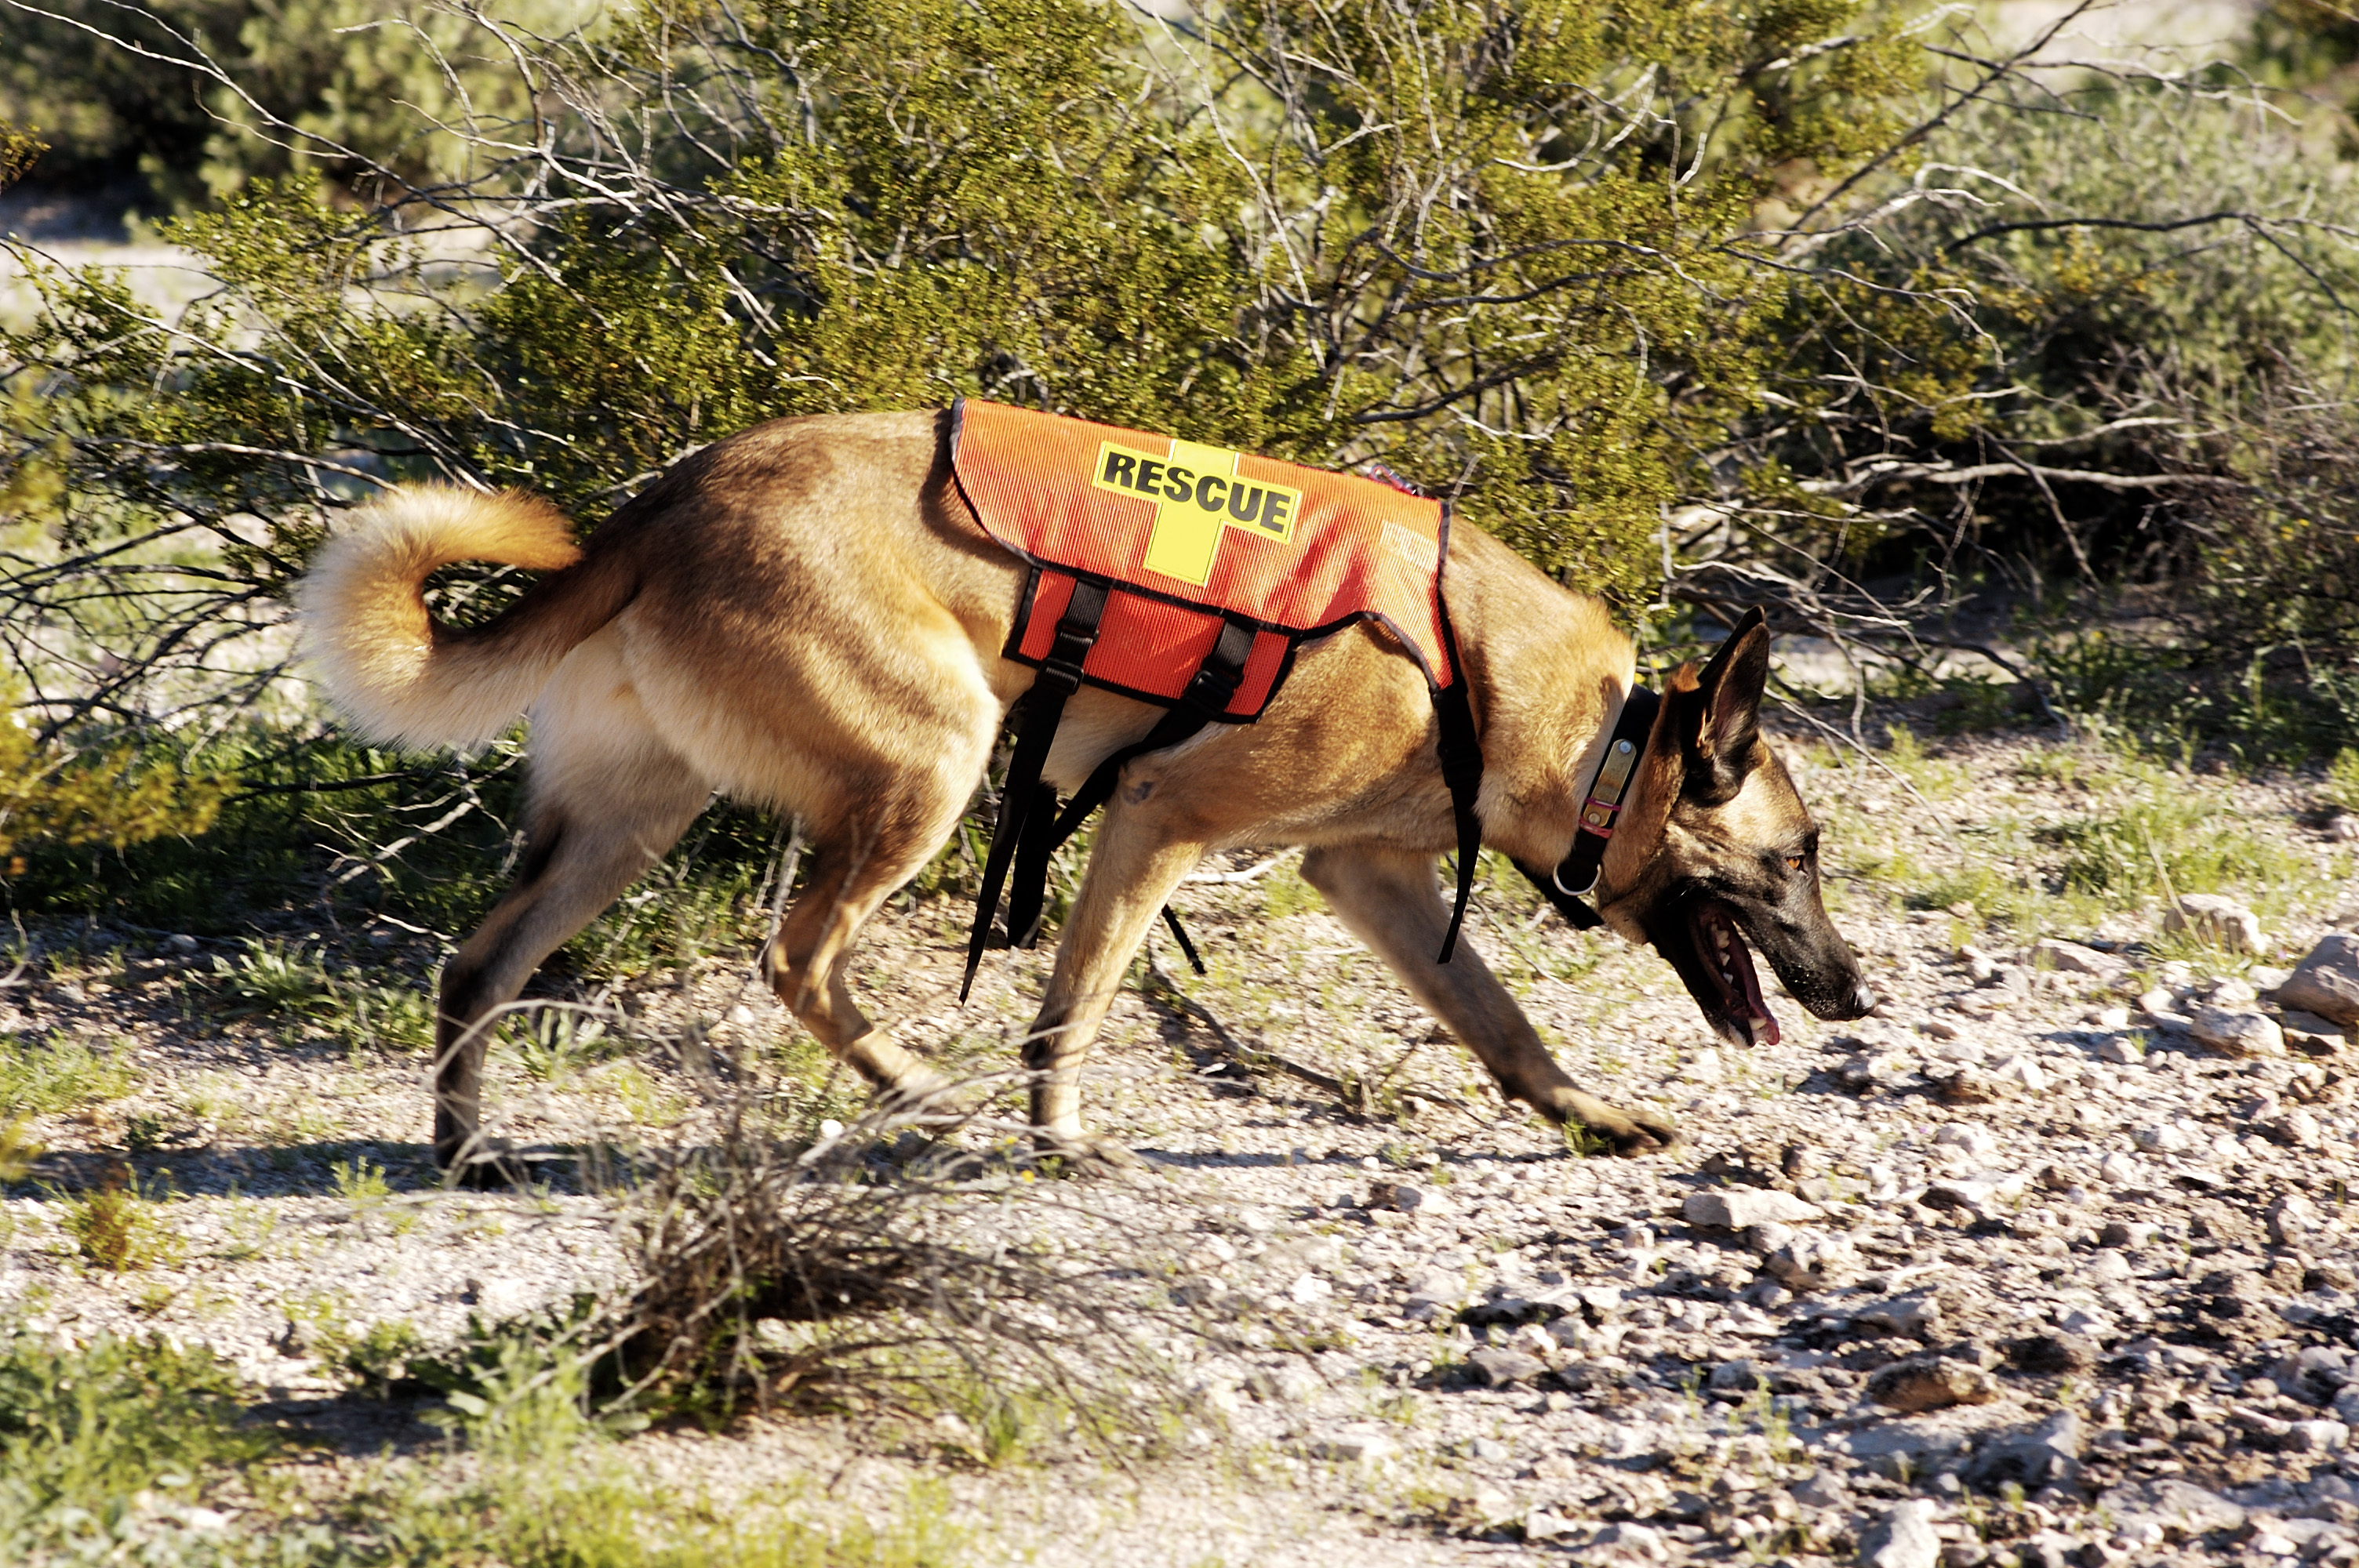 rescue dog and handler searching in desert